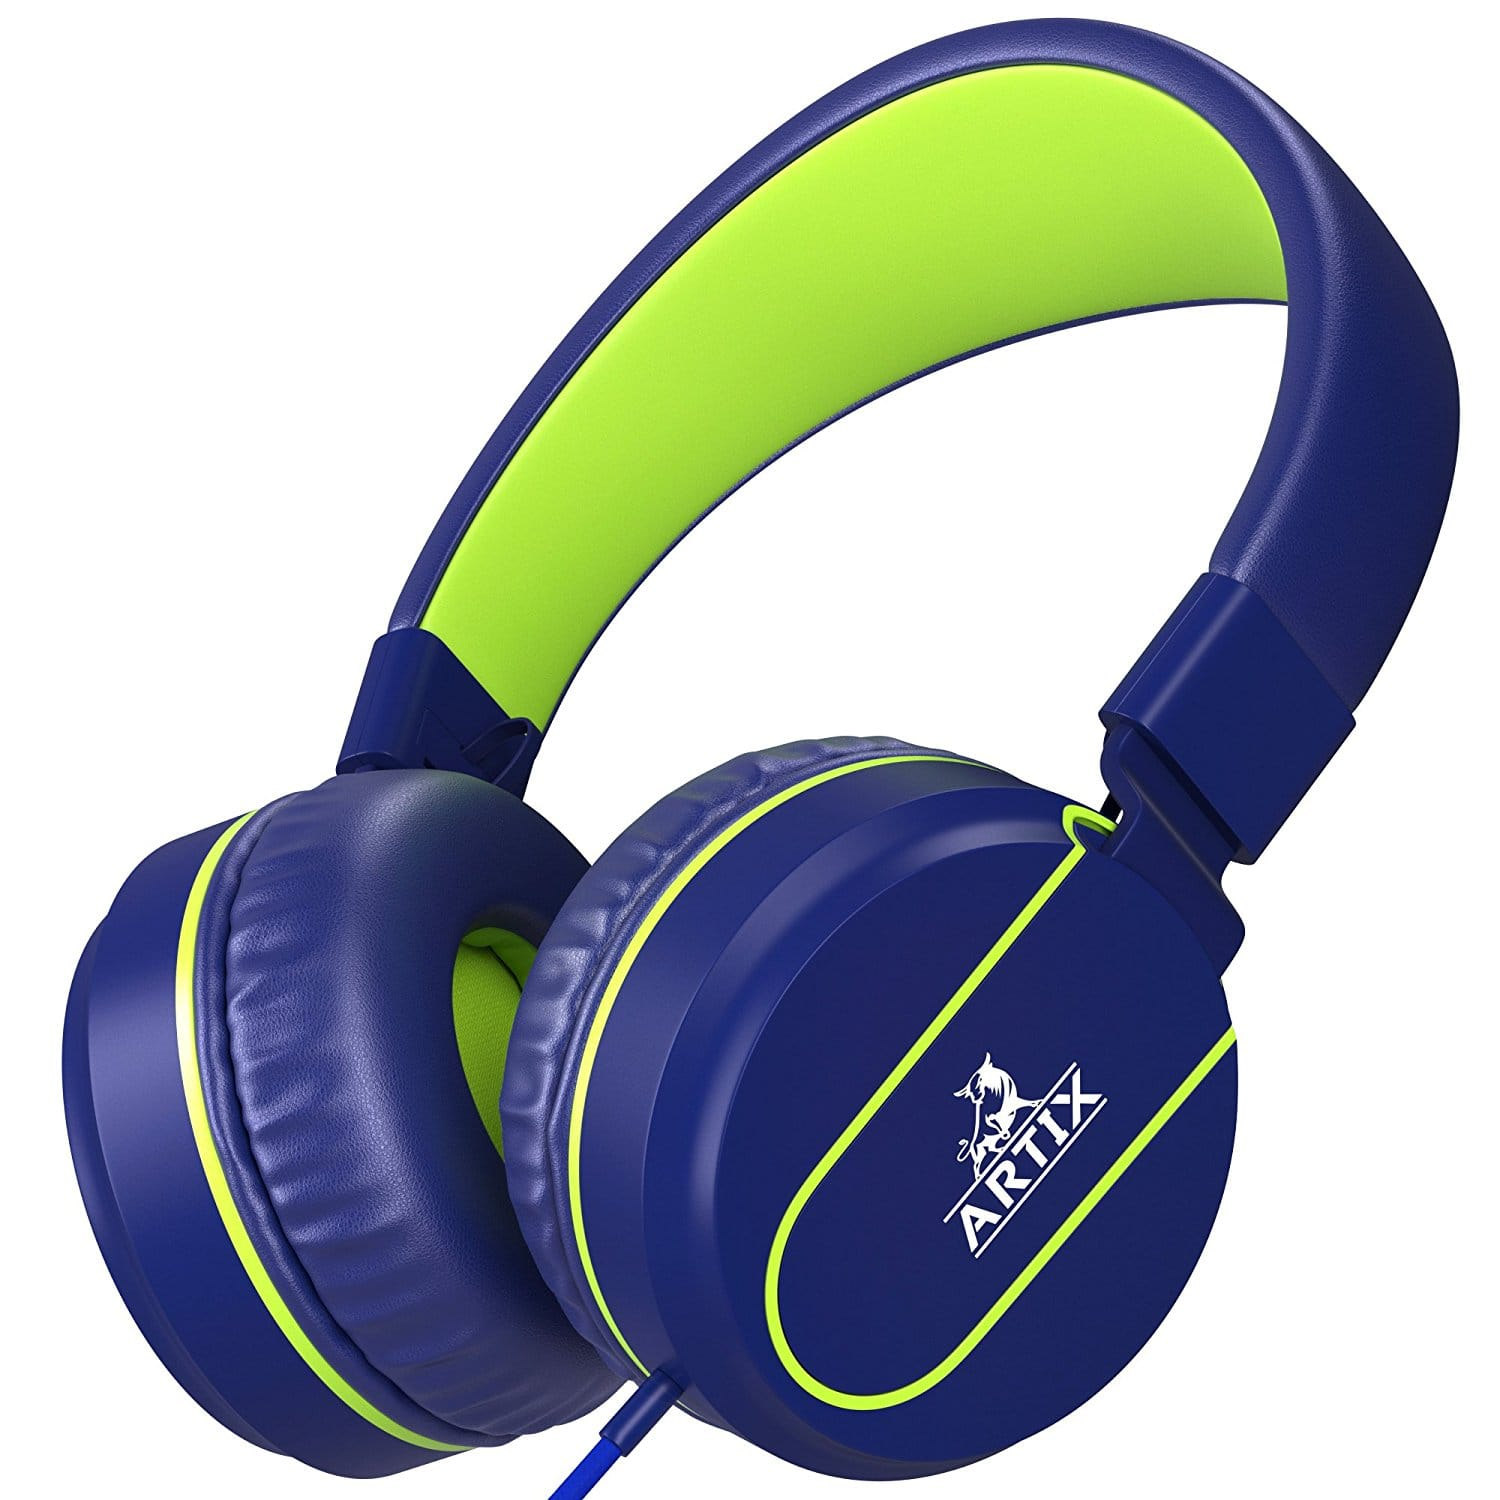 Artix Foldable Headphones with Microphone | NRGSound On-Ear Earphones for $8.99 + Free Shipping w/ Prime